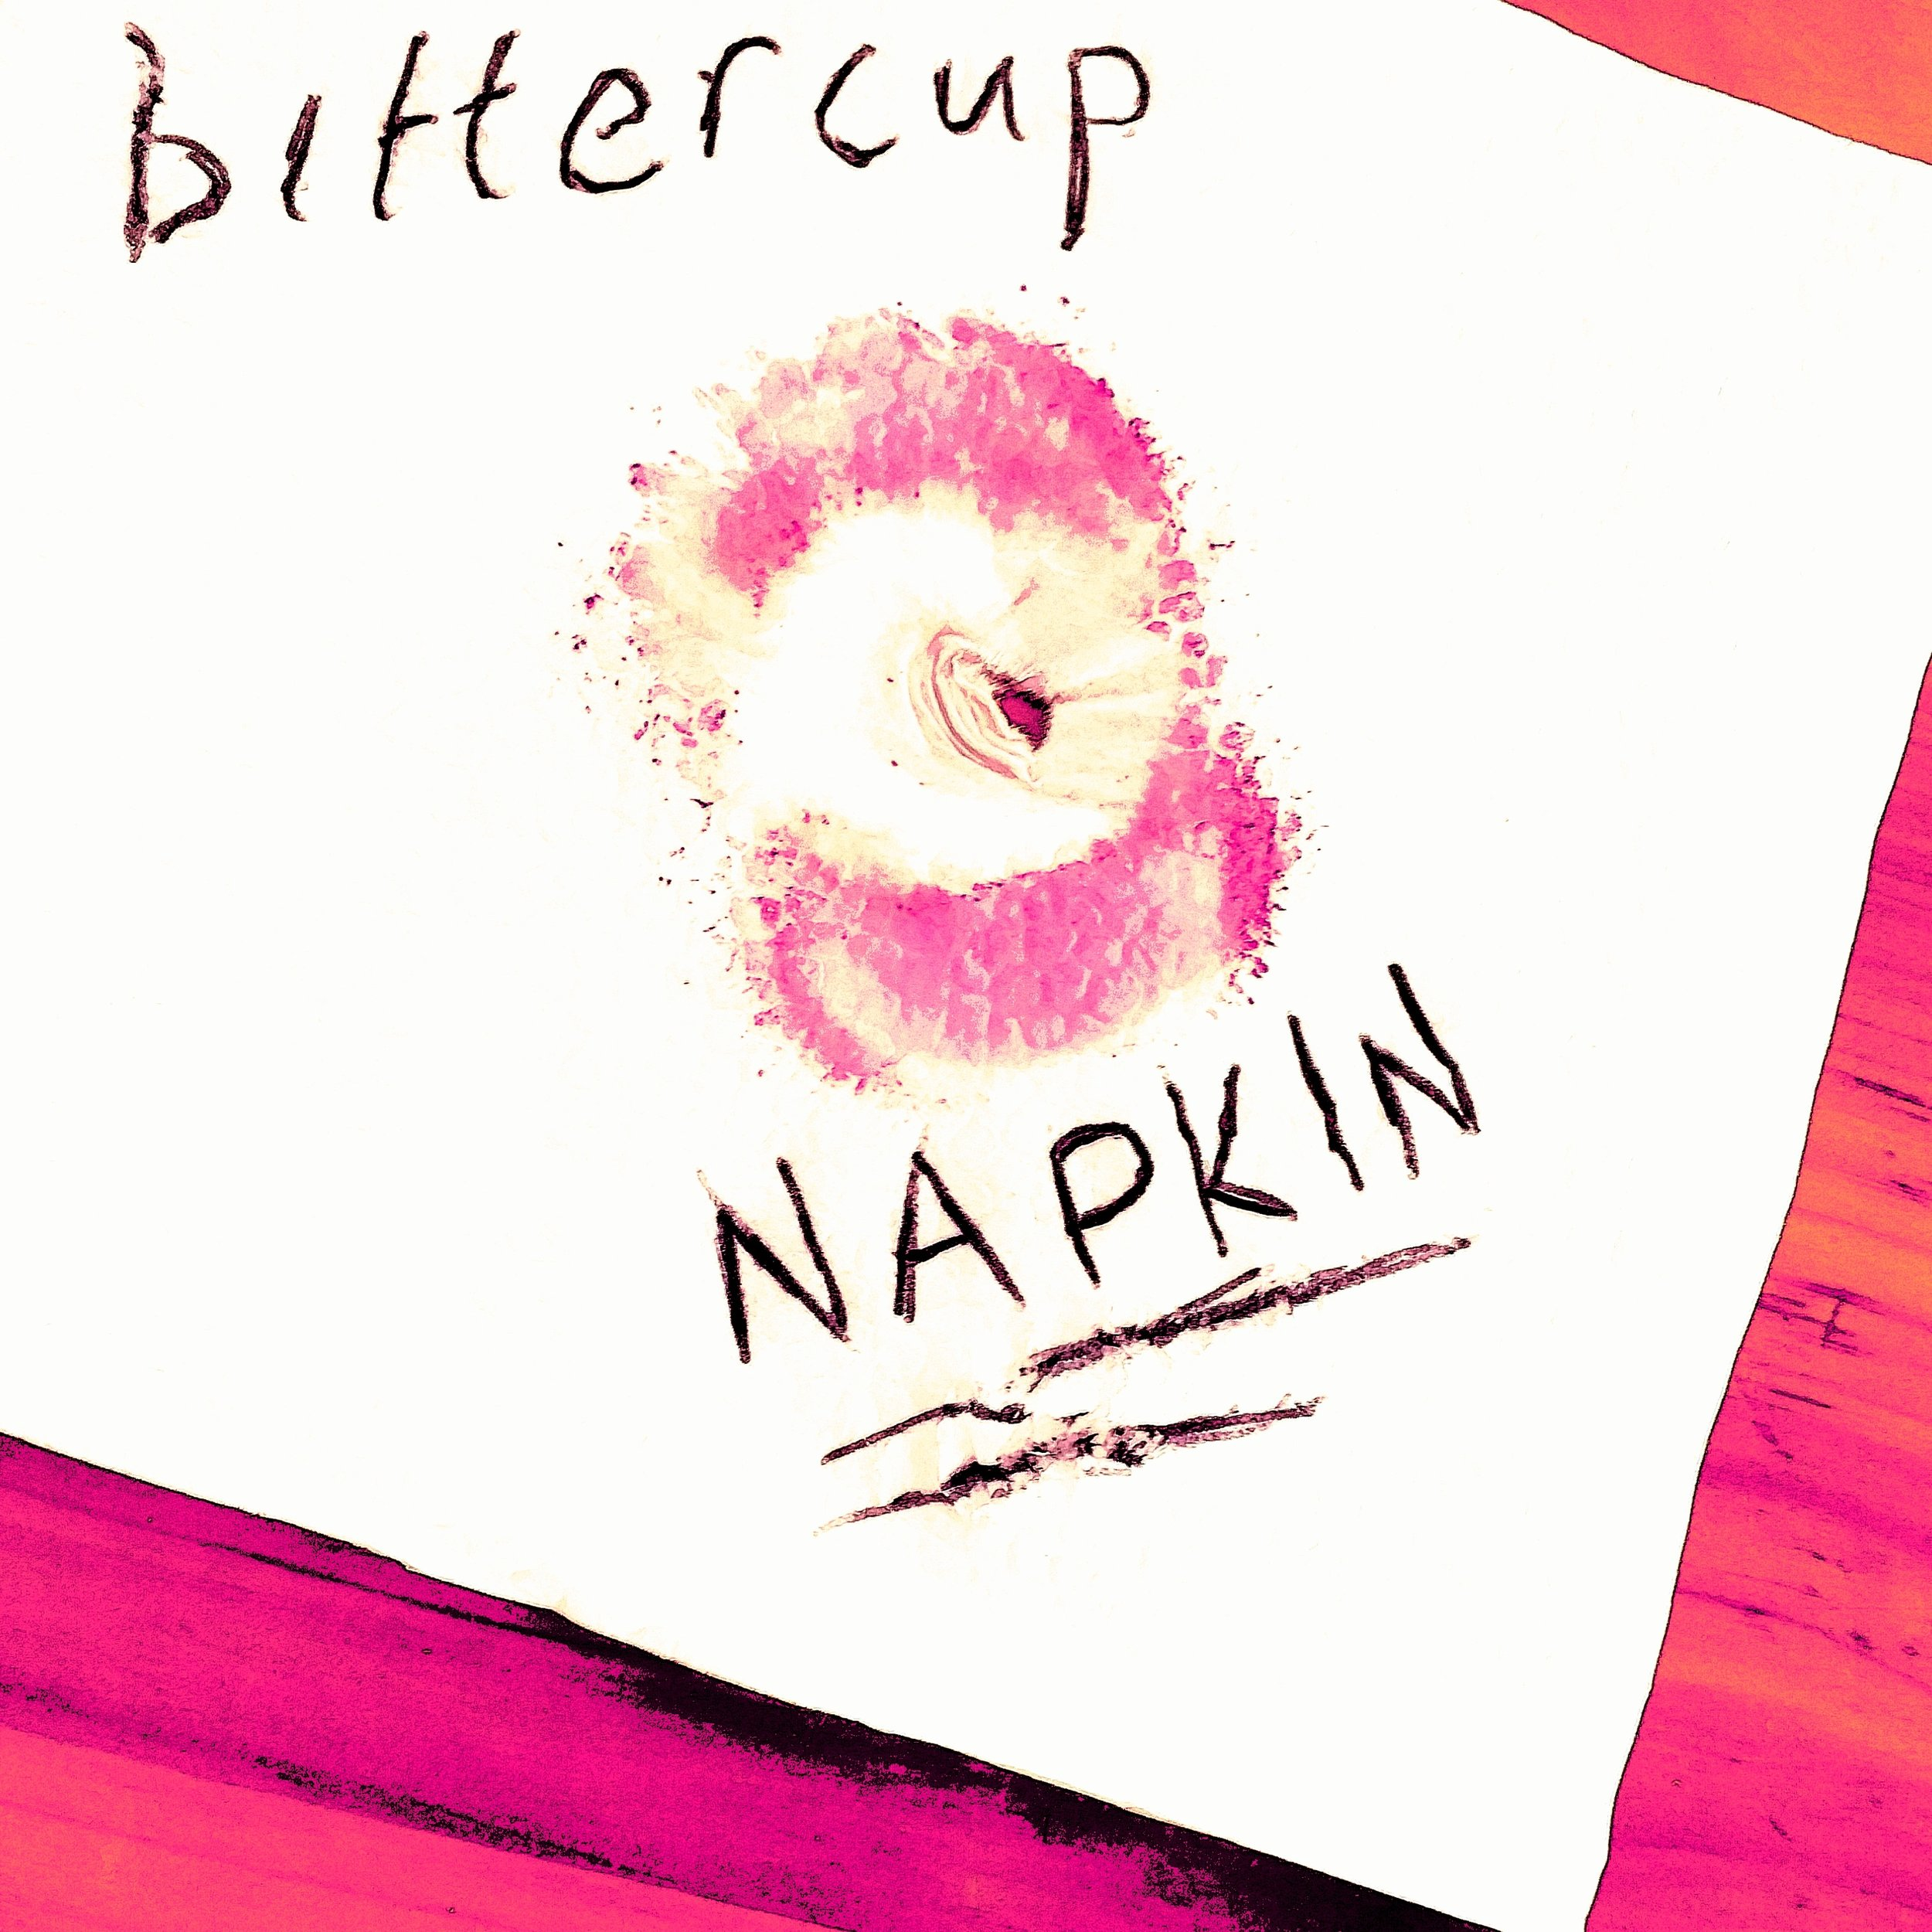 """Bittercup leaves a strong token of affection on the cover of """"Napkin."""""""